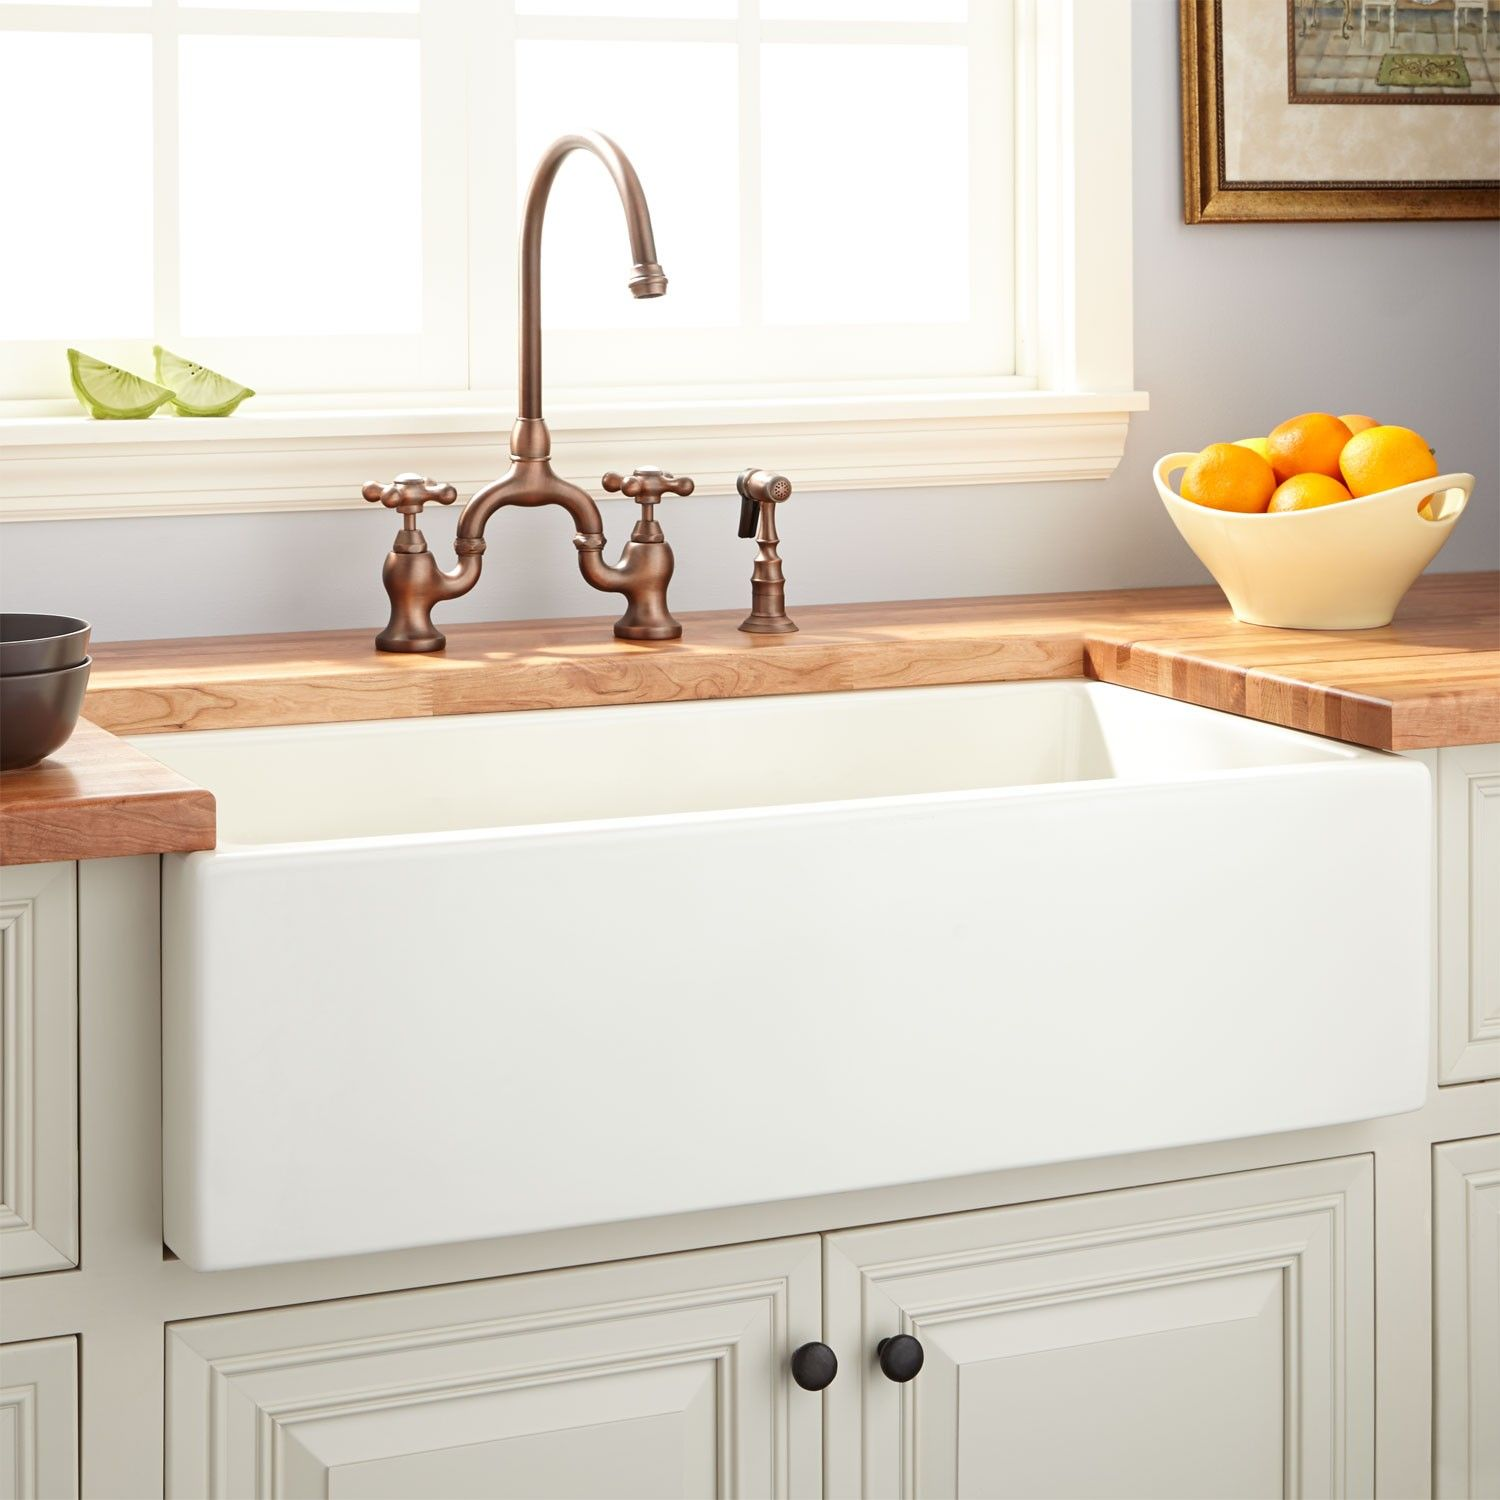 36 Dorhester Fireclay Lightweight Rerversible Farmhouse Sink Smooth Apron Biscuit White Farmhouse Sink Sink Fireclay Farmhouse Sink